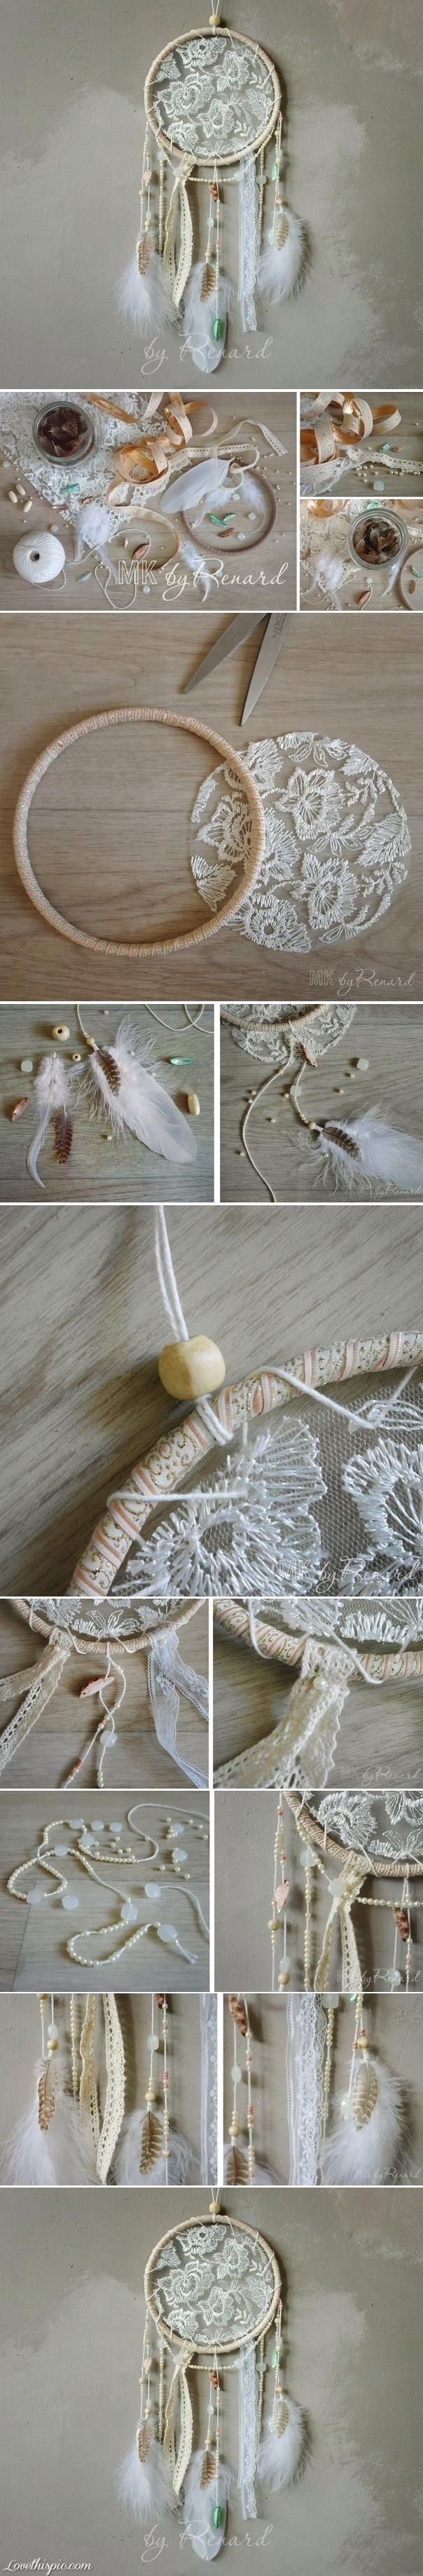 DIY dream catcher. I love how this one looks